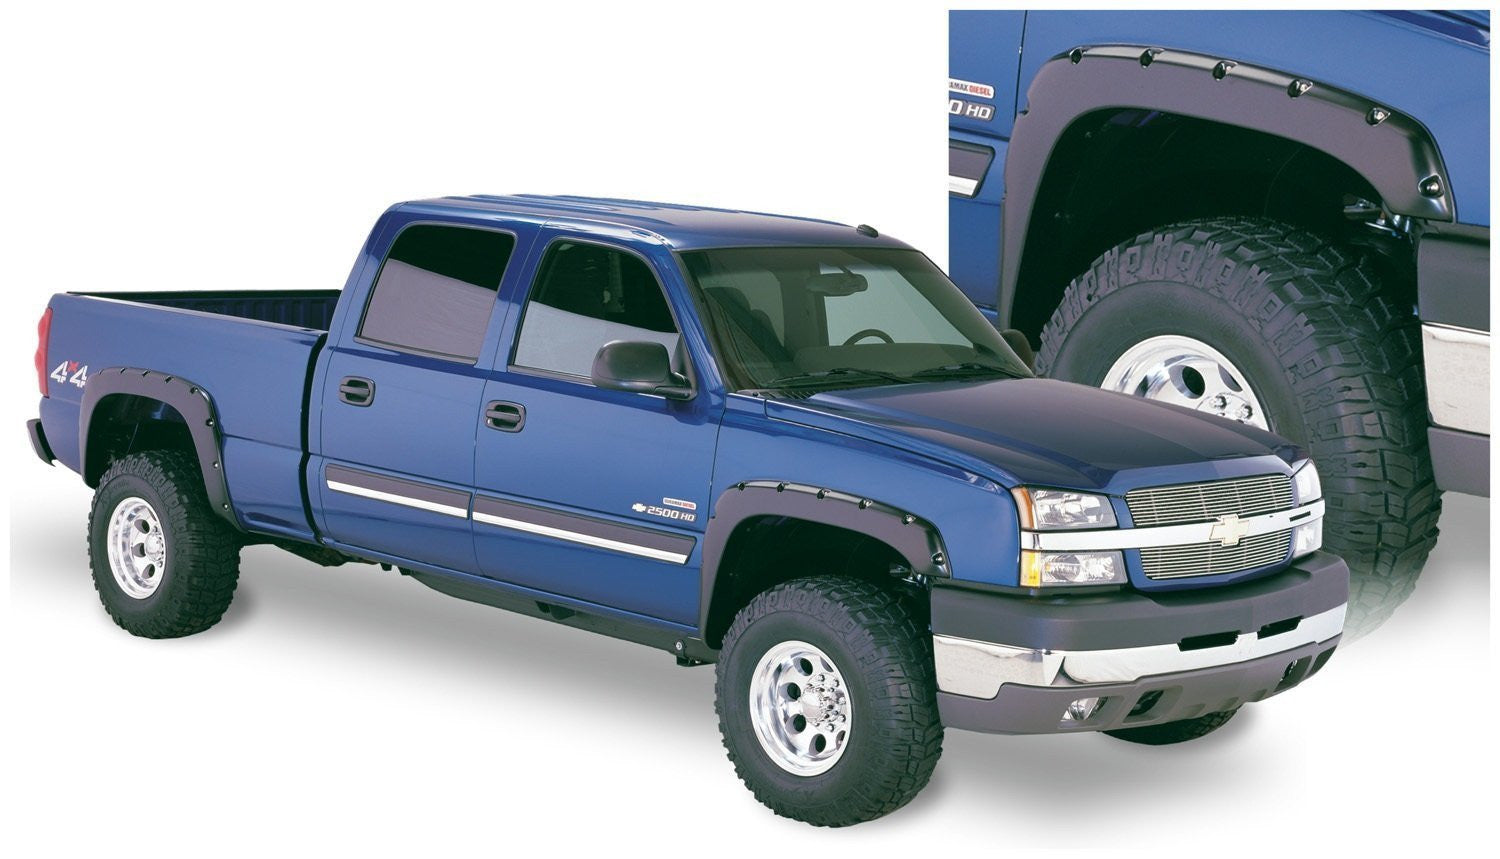 Silverado 2003 chevy silverado 1500 accessories : Bushwacker Pocket Style fender flares 2003-2006 Chevy Silverado ...